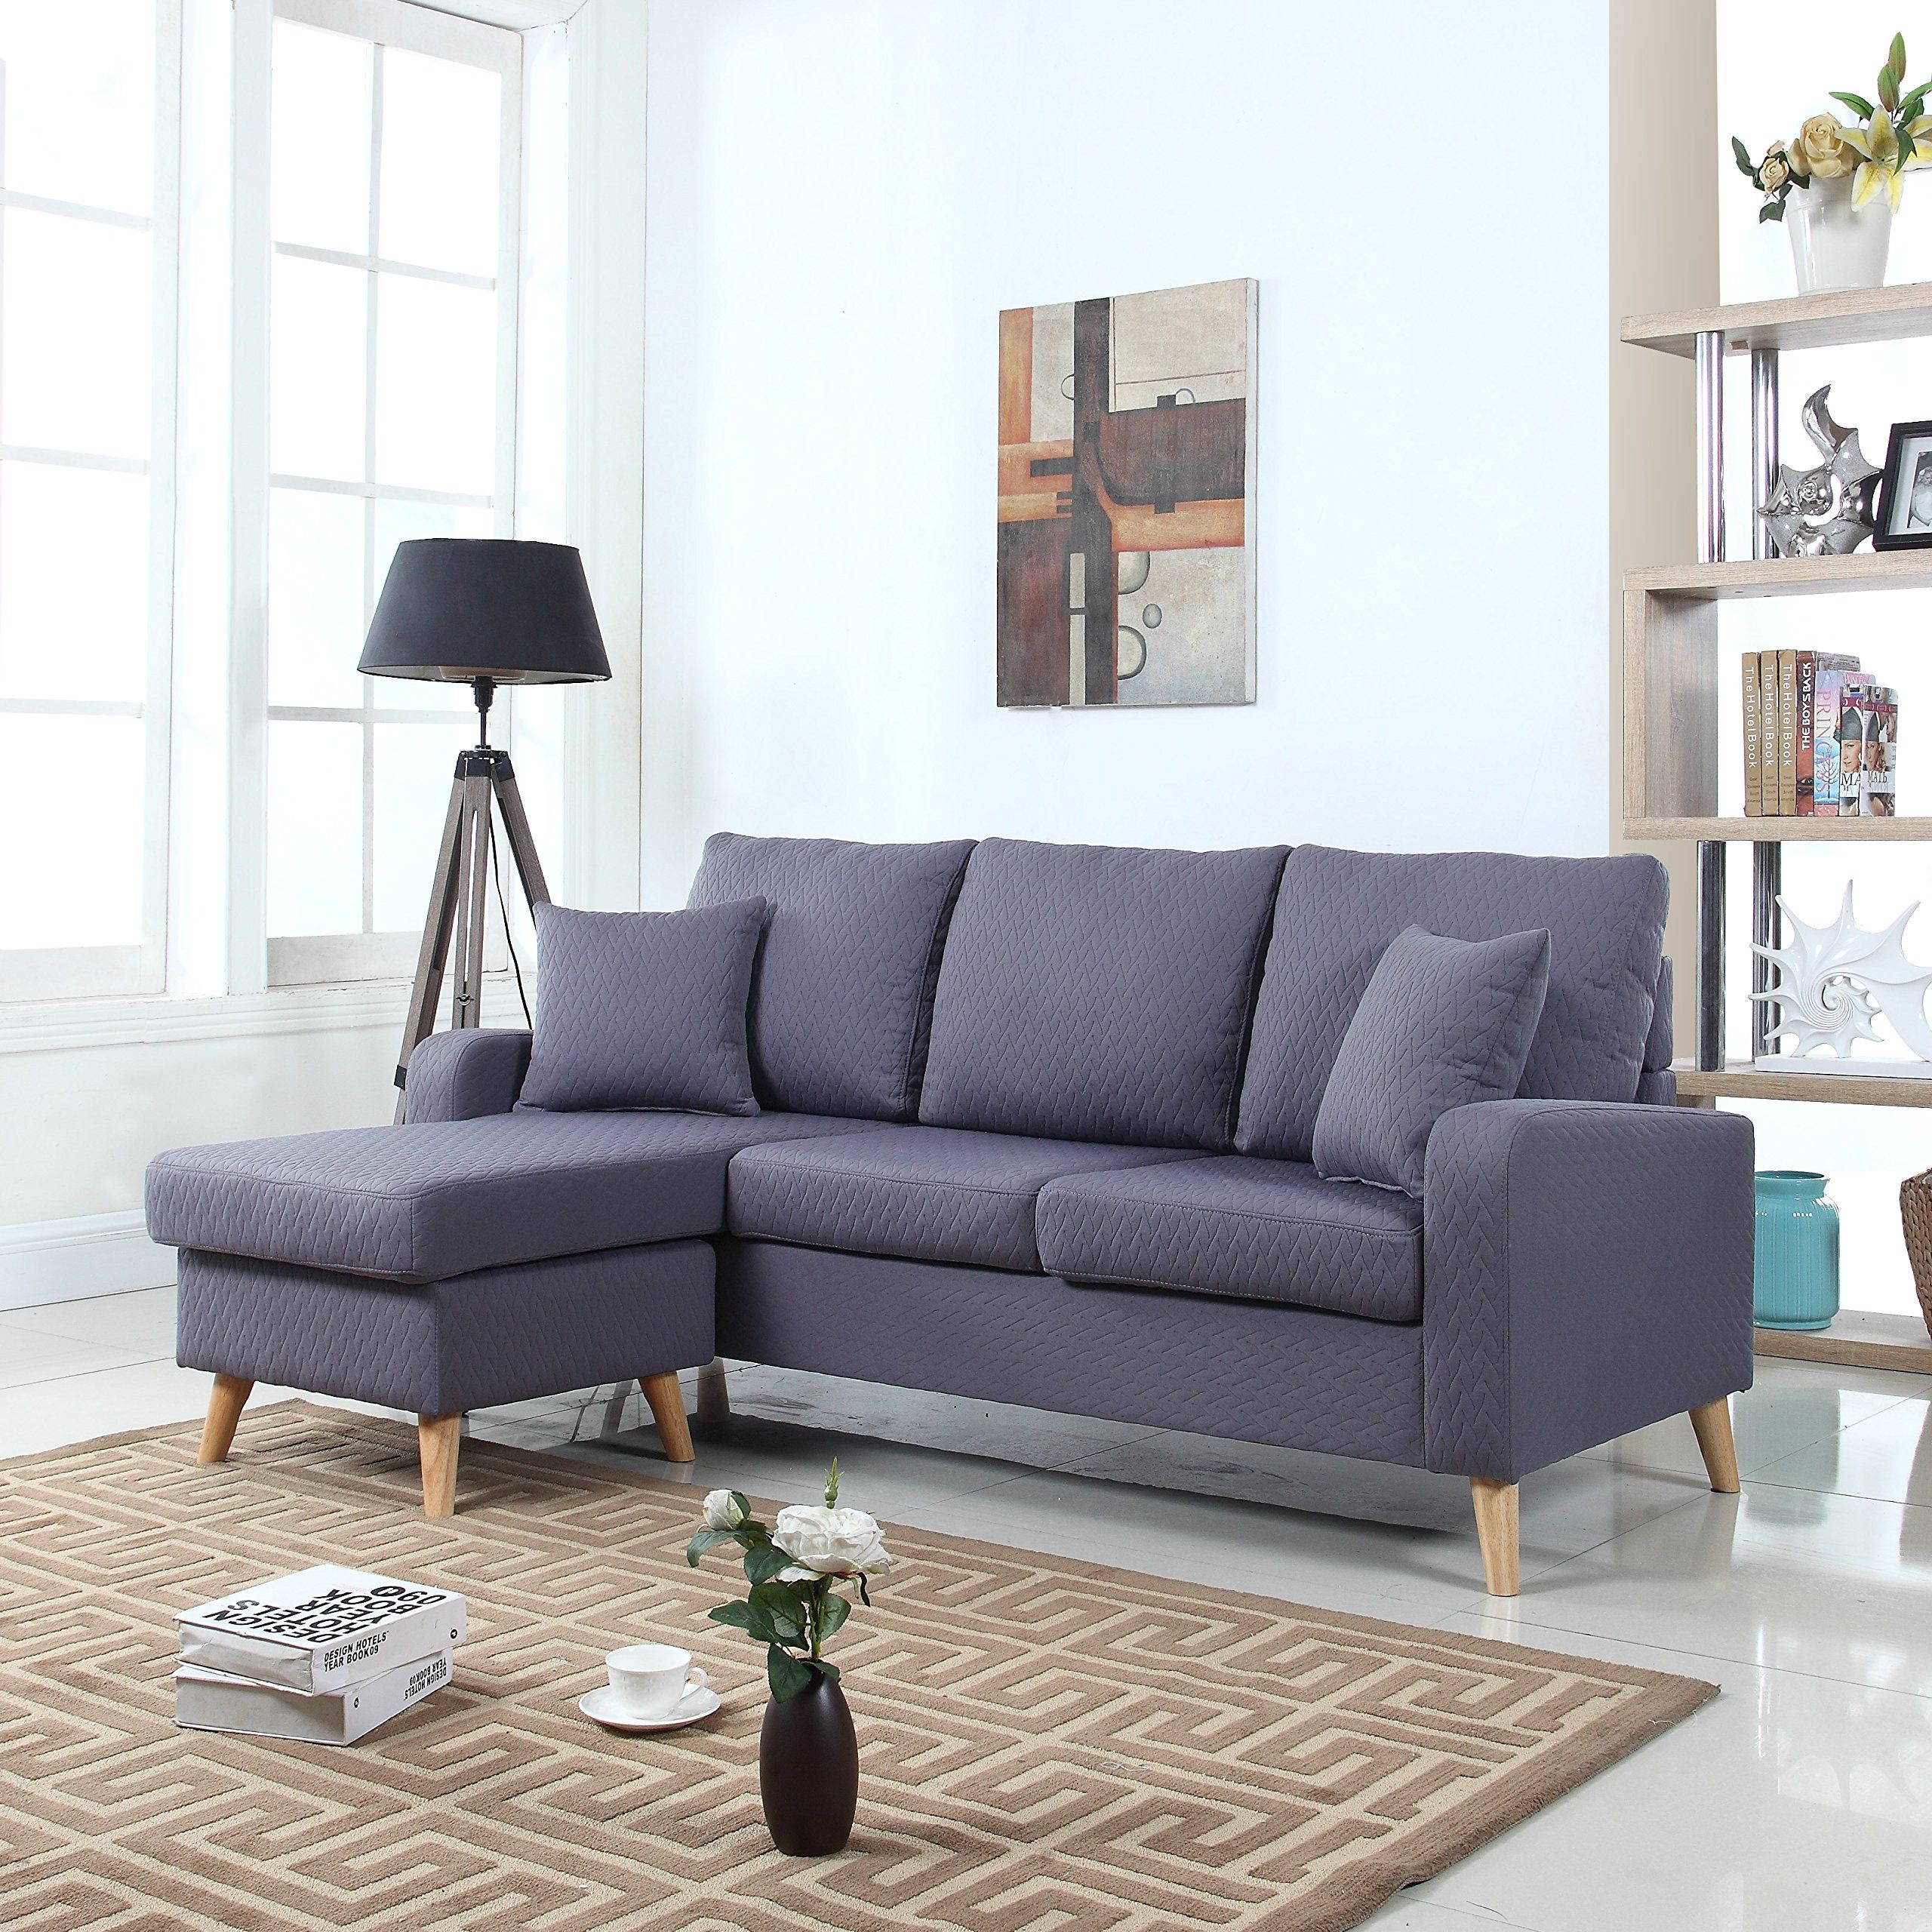 Amazon Com Mid Century Modern Linen Fabric Small Space Sectional Sofa With Reversible Cha Small Space Sectional Sofa Small Space Sectional Living Room Designs